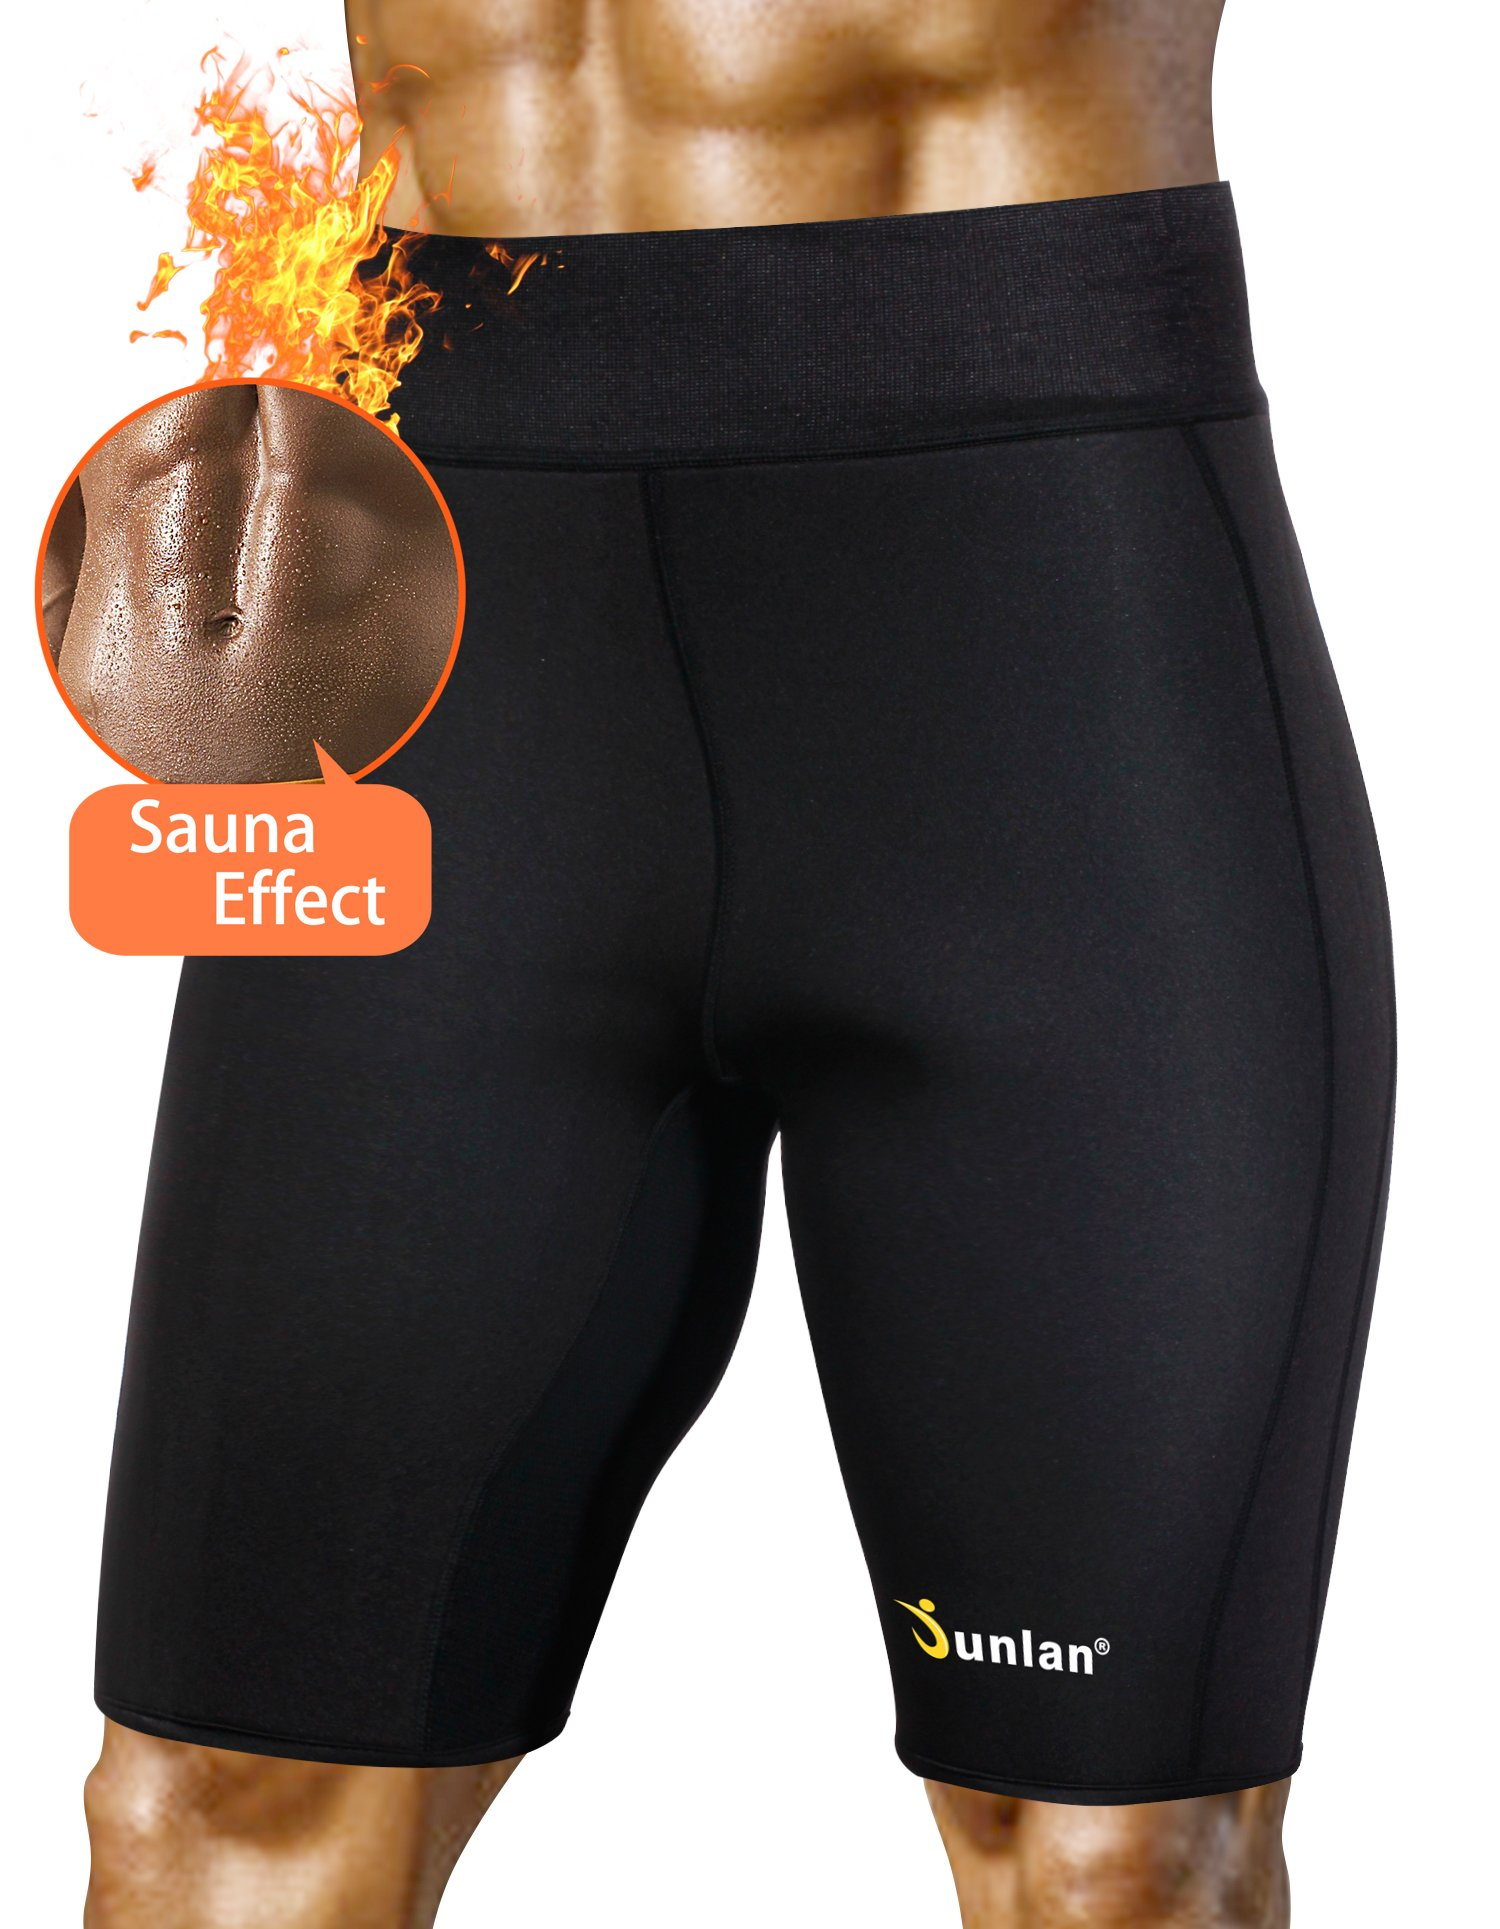 Men'S Weight Loss Sauna Hot Sweat Thermo Shorts Body Shaper Neoprene Athletic Yoga Pants Gym Tummy Fat Burner Slimming